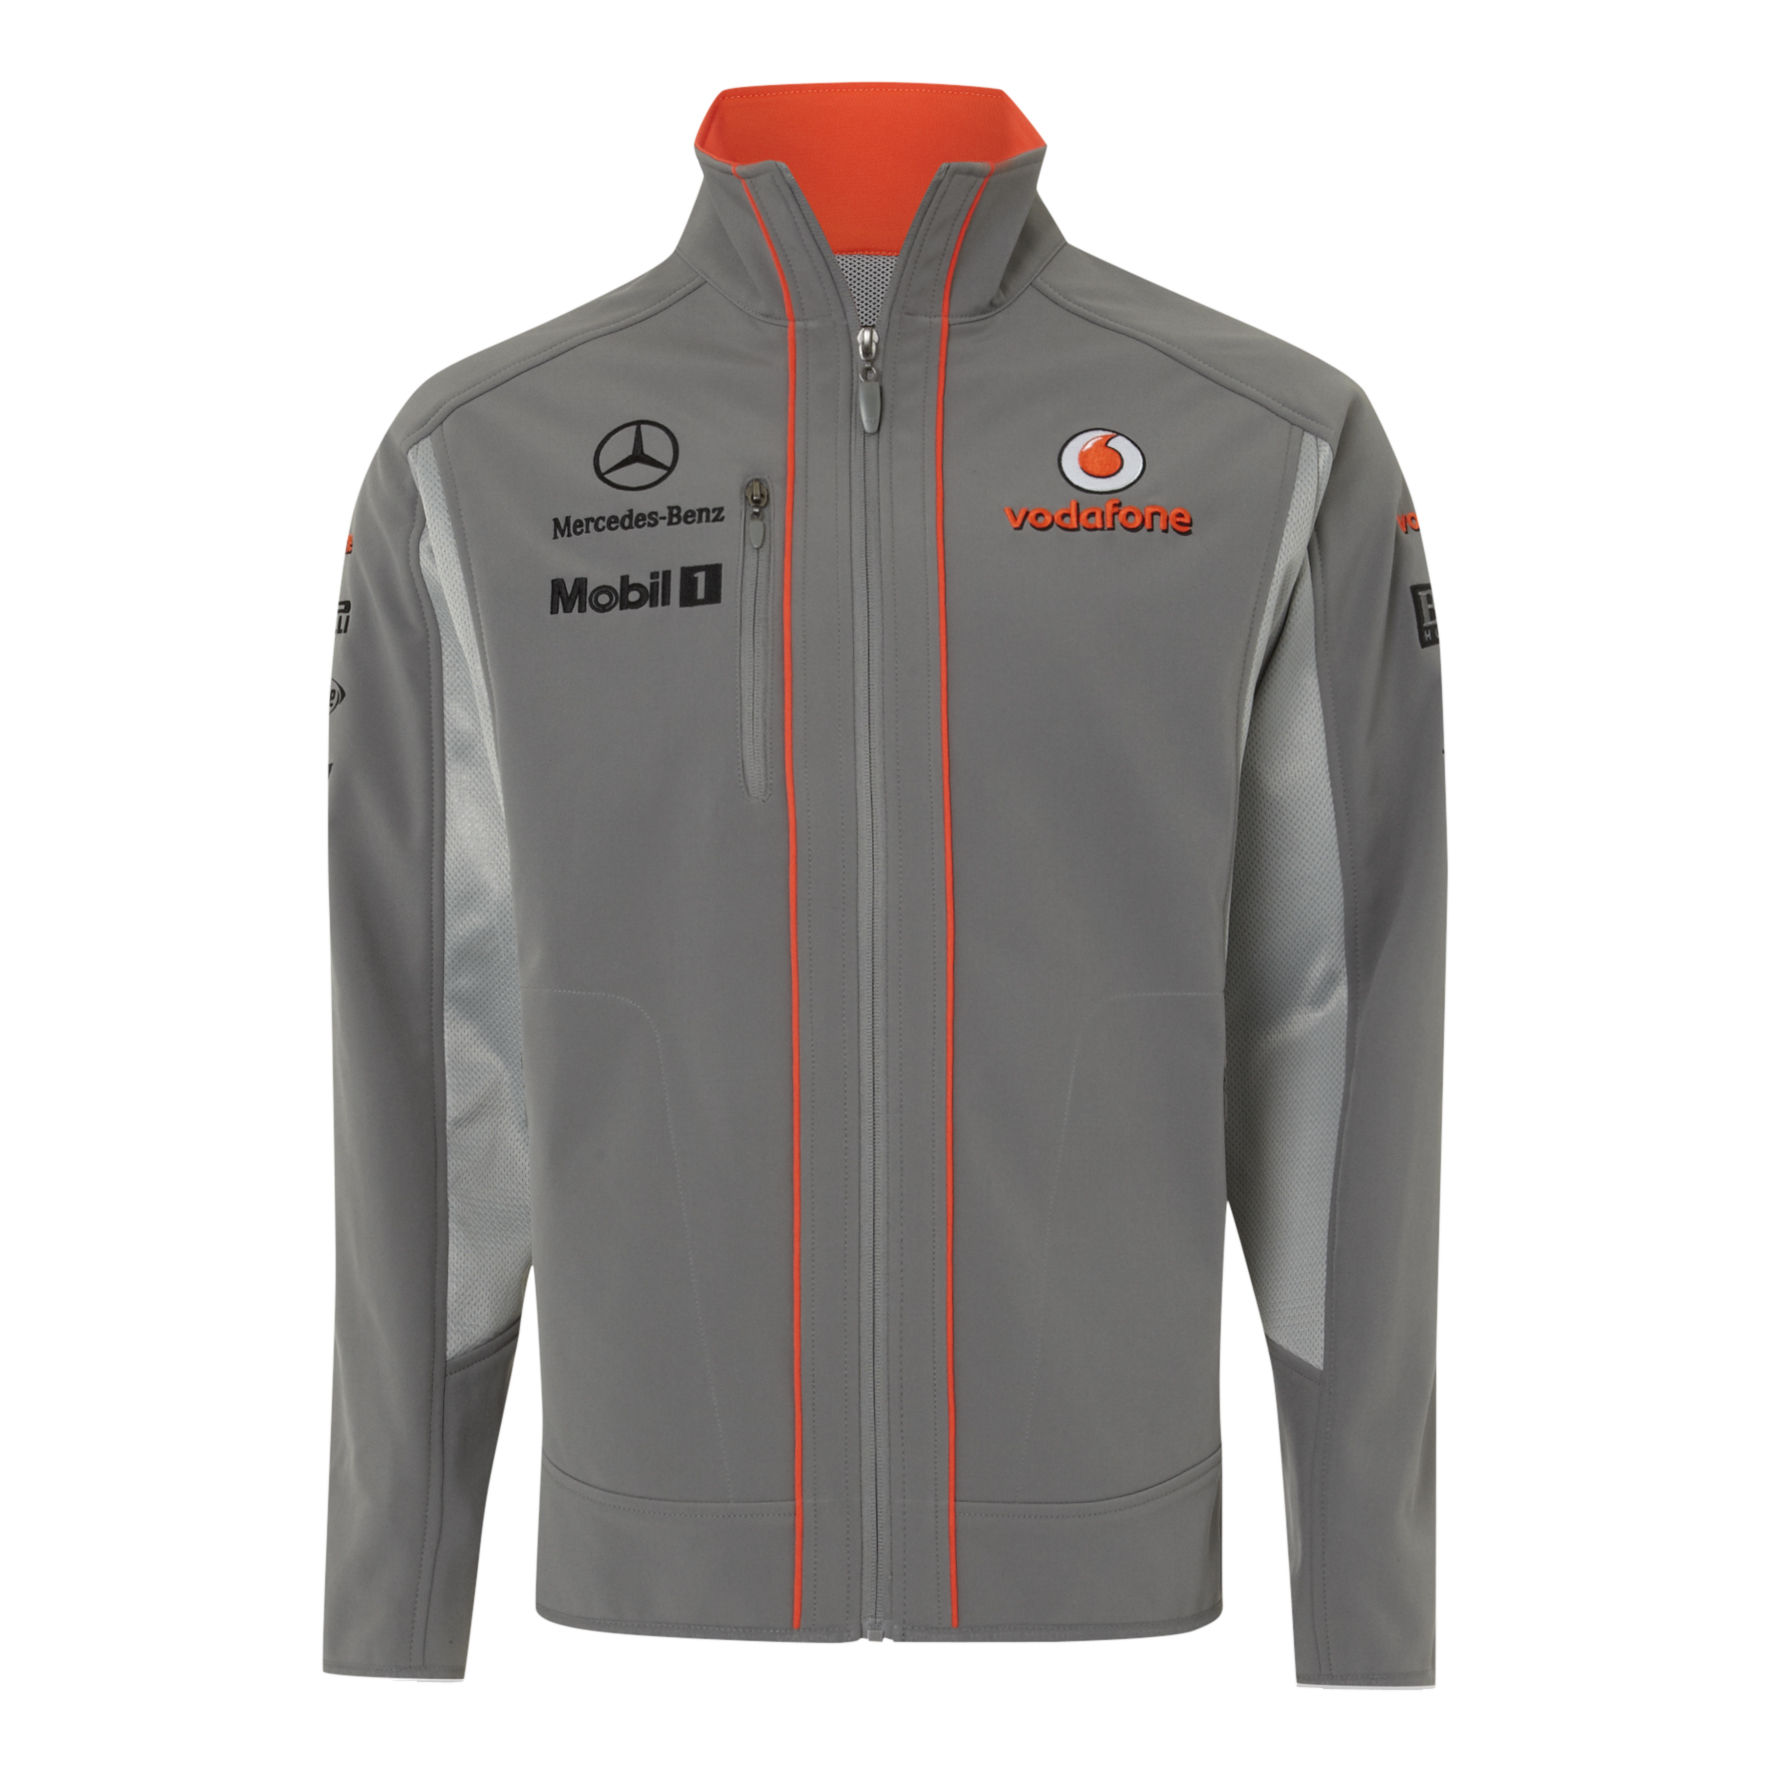 Vodafone McLaren Mercedes 2013 Team Soft Shell